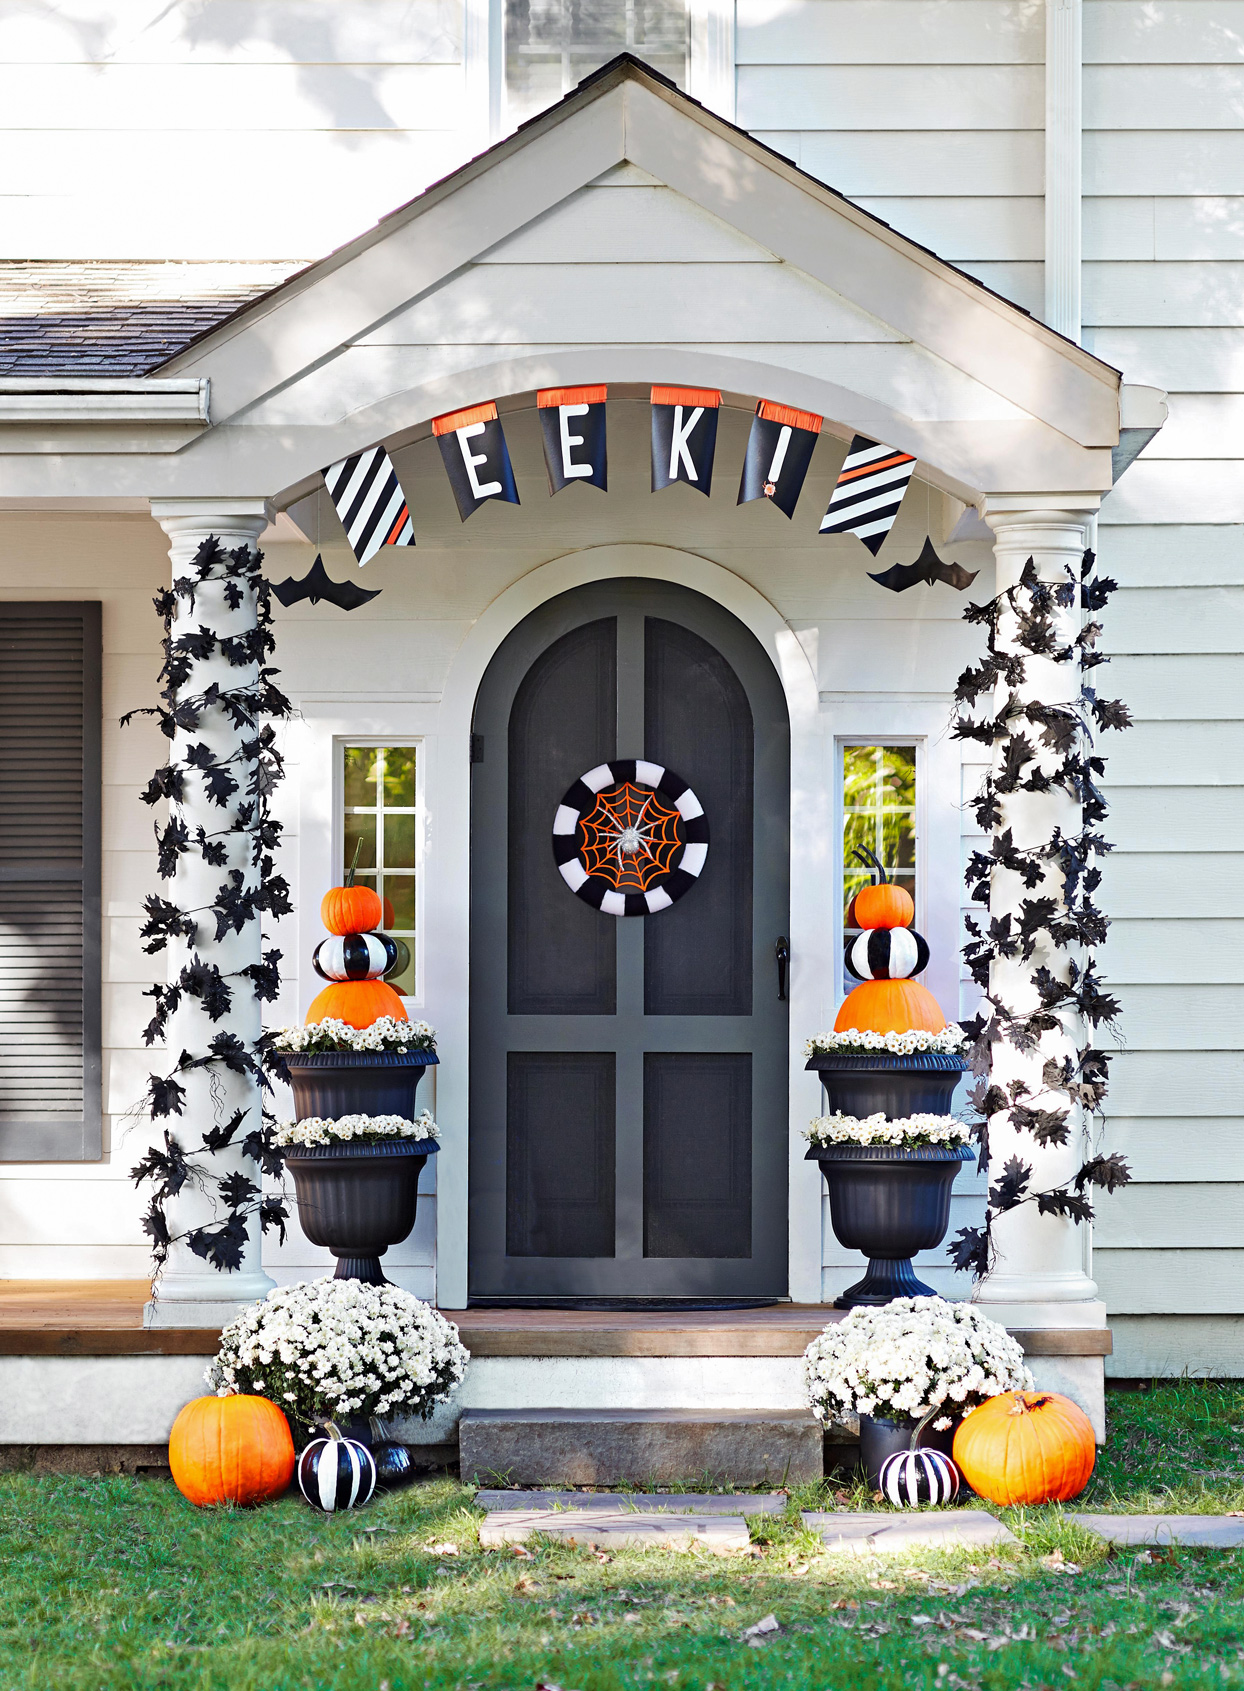 eek! halloween porch banner